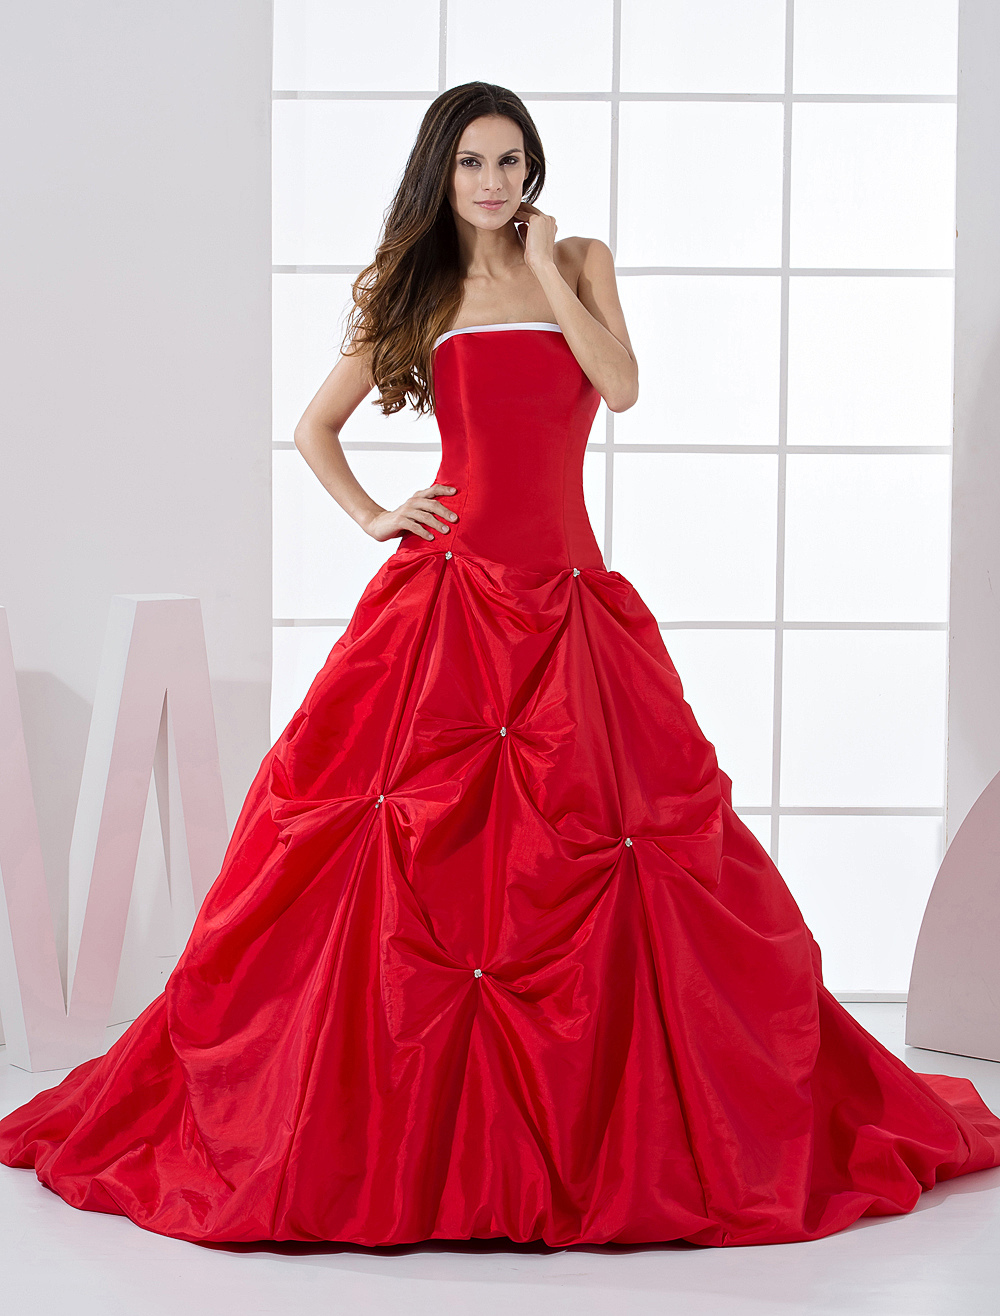 Red Formal Ball Gown Strapless Beading Taffeta Ball Gown